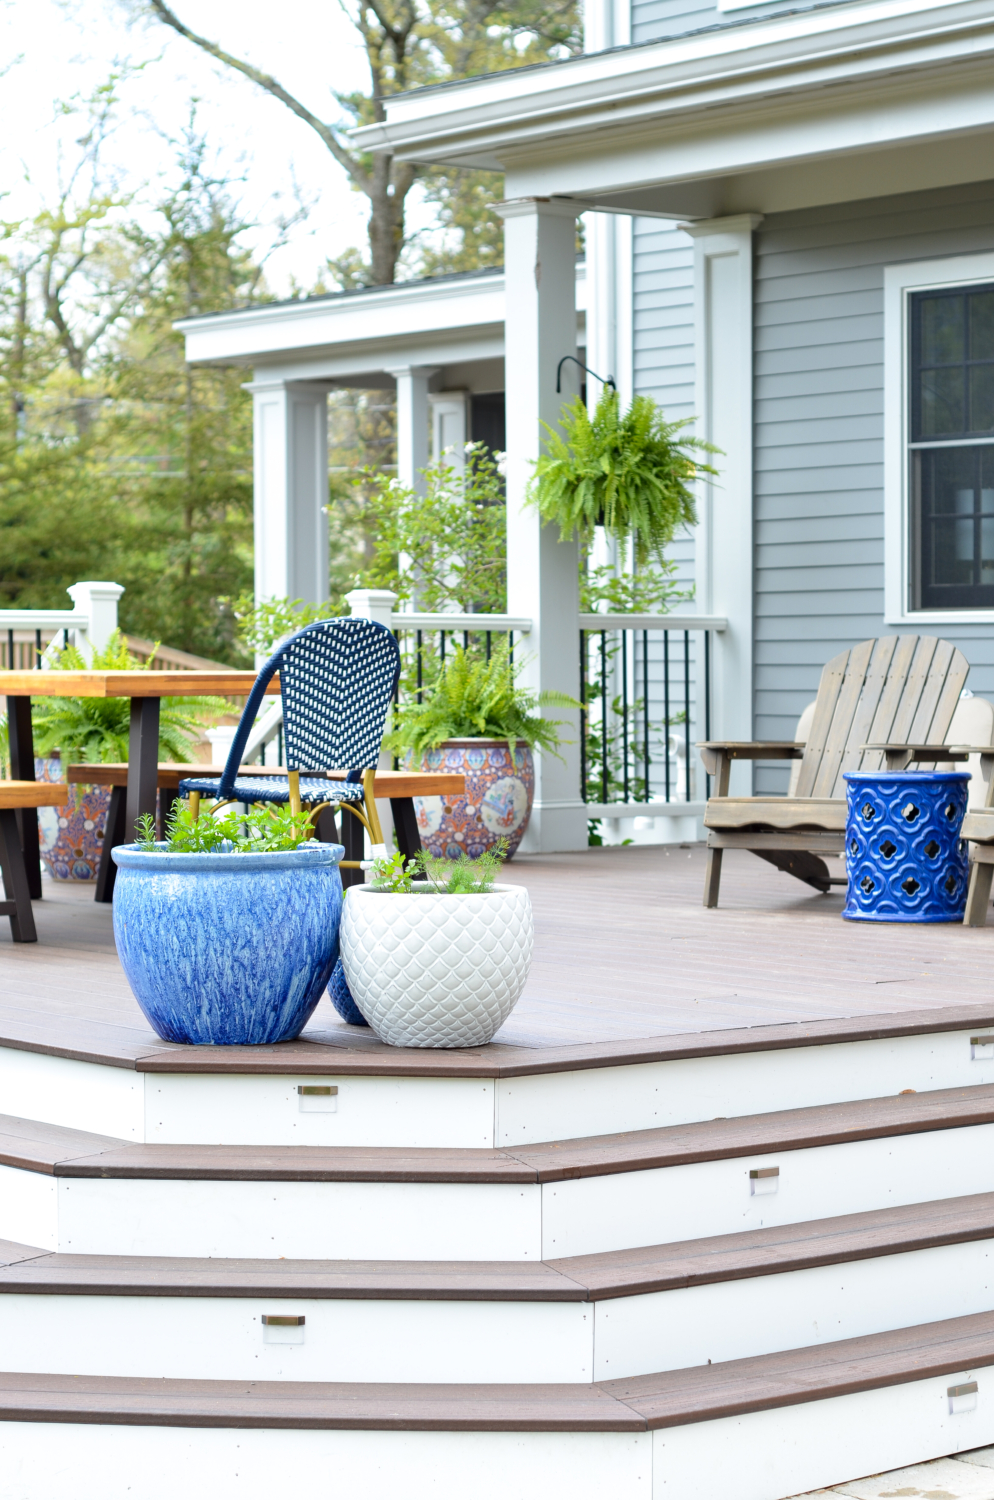 Diy Deck Final Thoughts On Building A Deck Yourself The